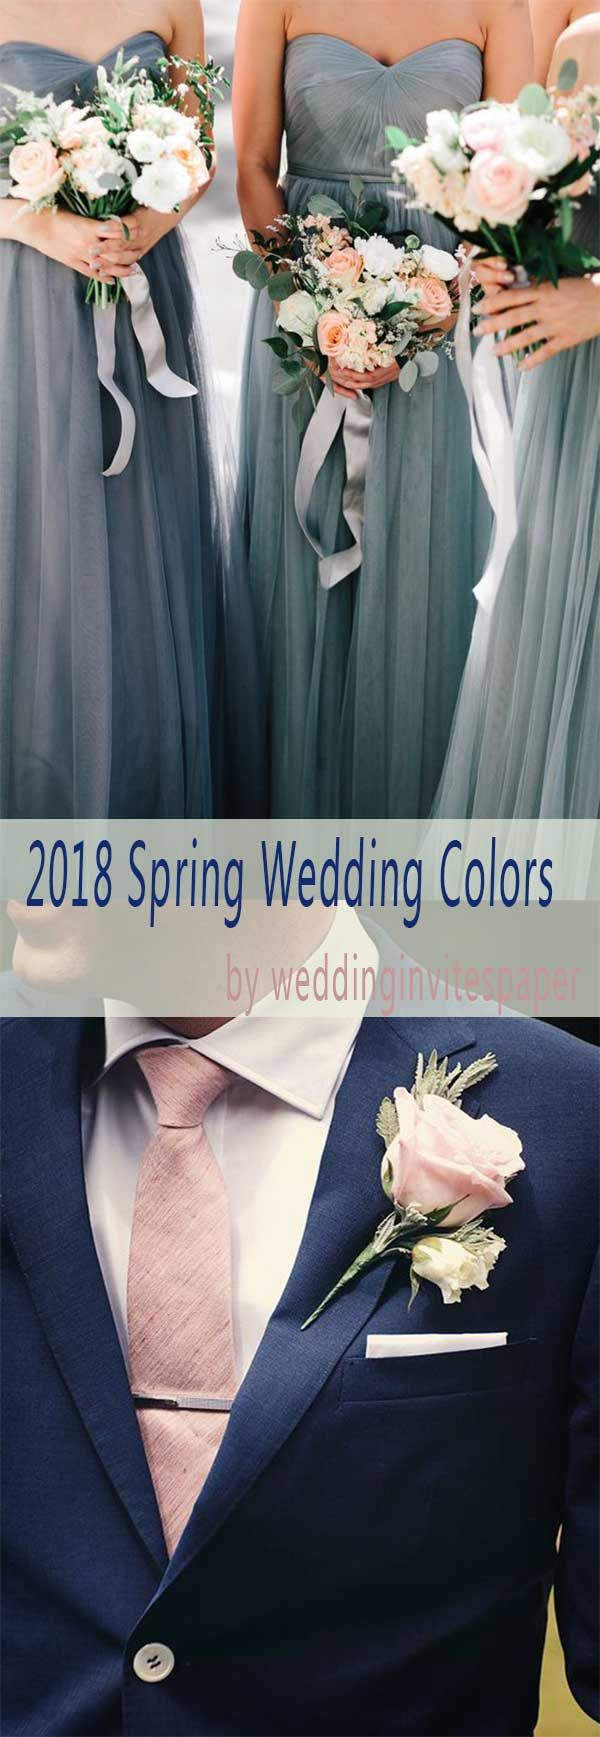 Wedding color prettiest spring color palettes incorporated